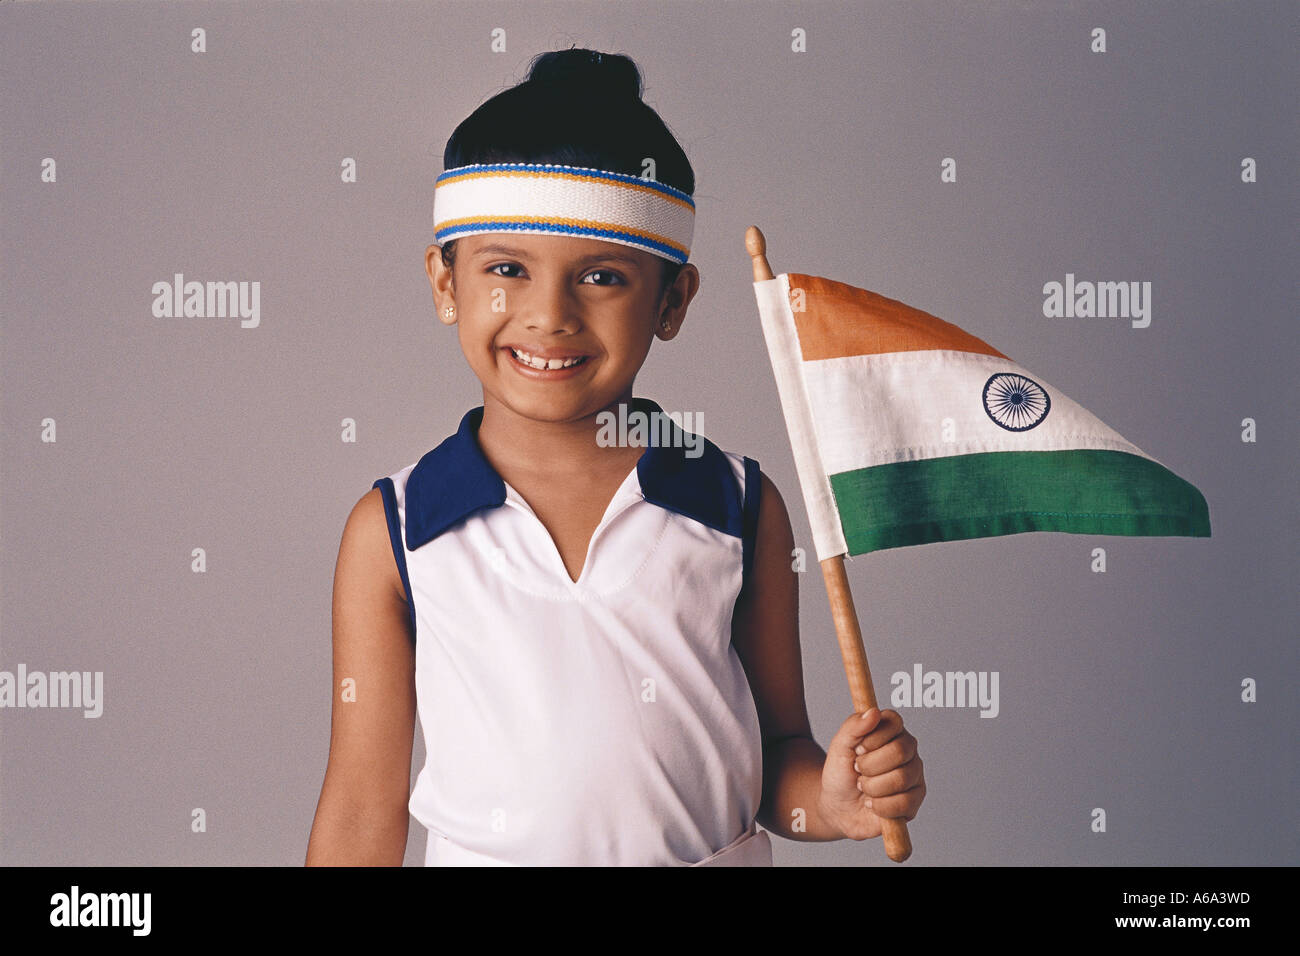 663ca57254 Indian child Tennis Player Girl fancy dress Holding The Indian Flag MR#500